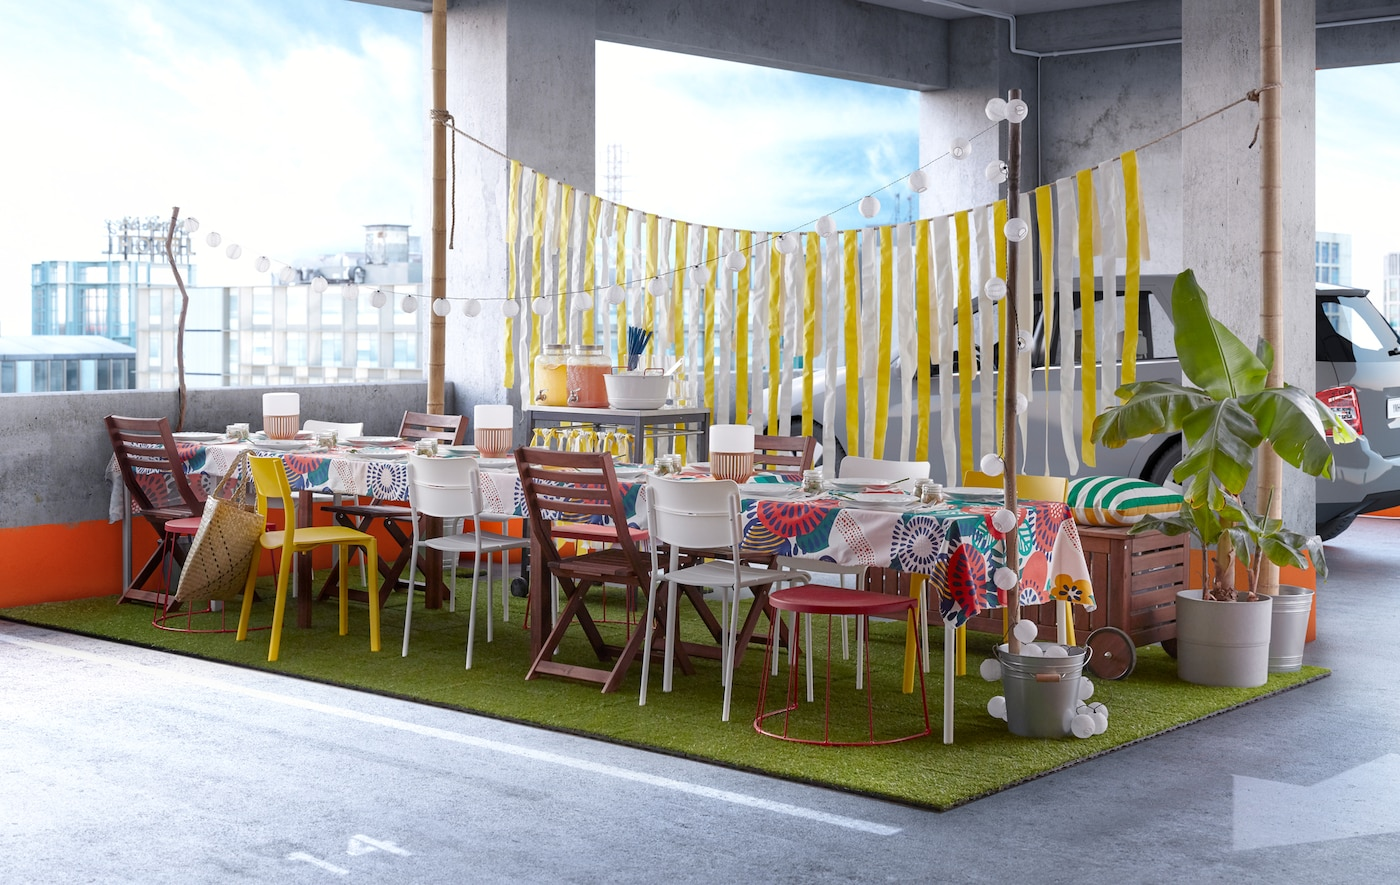 An open air dinner party scene with tables and seating in a urban car park setting.